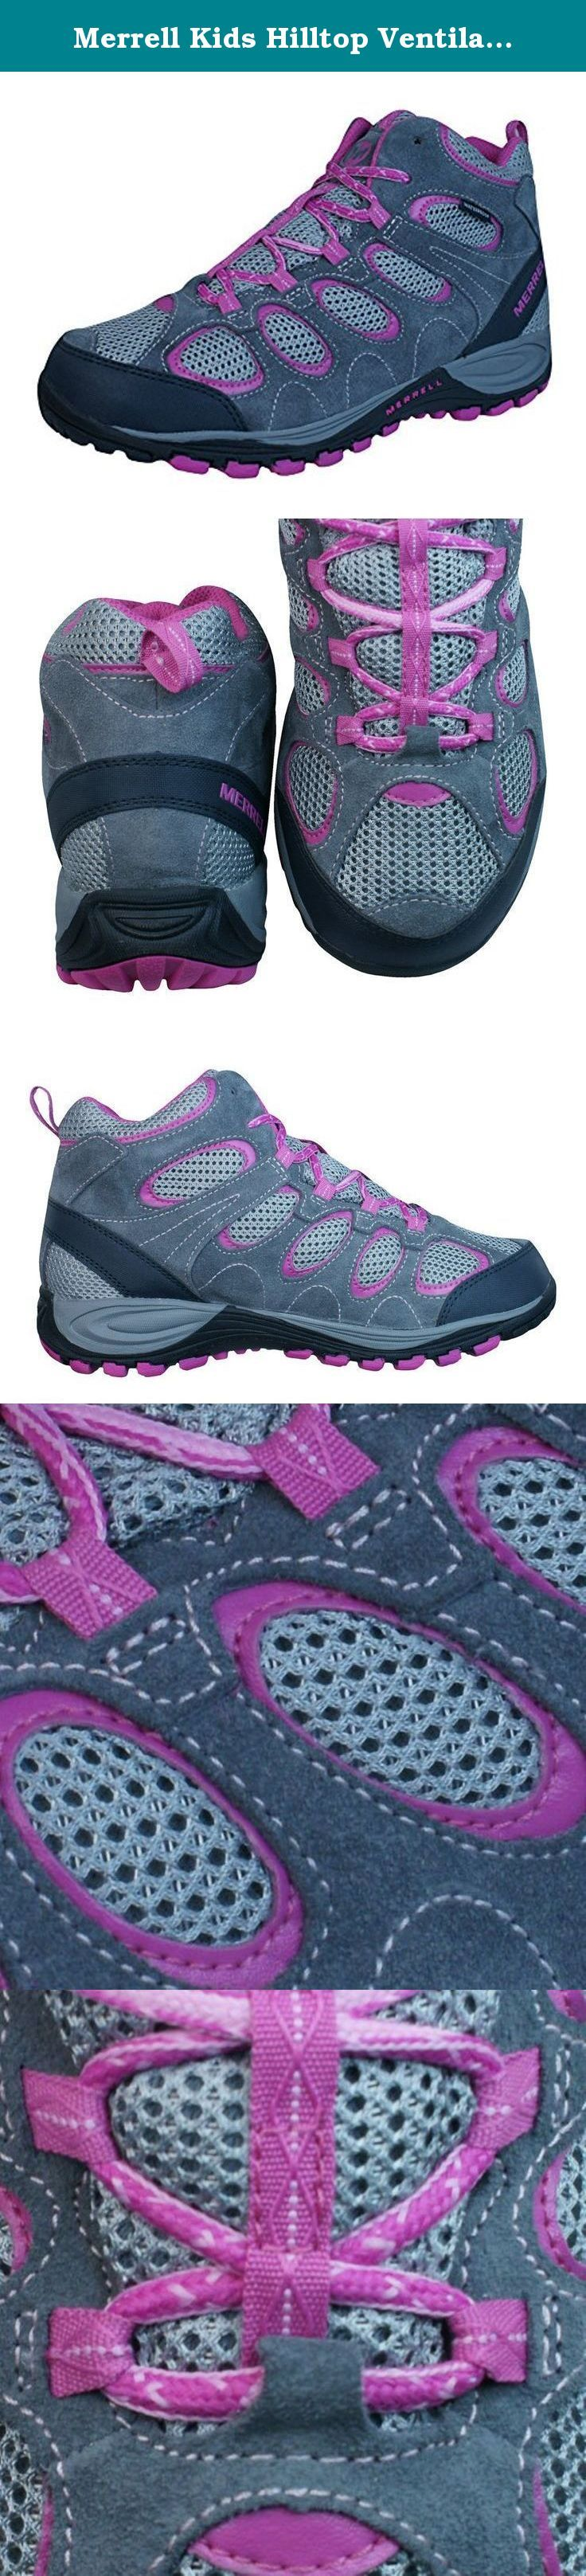 Merrell Kids Hilltop Ventilator Hiking Shoes Boots Grey/Pink 13. Merrell Hilltop Ventilator Mid WTP Girls Hiking Boots / Trainers - The Merrell Hilltop Ventilator Walking Boots utilise a stroble construction for enhanced comfort and flexibility, with a breathable and waterproof lining complete with antimicrobial treatment. Girls walking boots. Leather and textile upper.Waterproof / breathable lining. Stroble construction. Antimicrobial treatment. Merrell Air Cushion. EVA midsole.